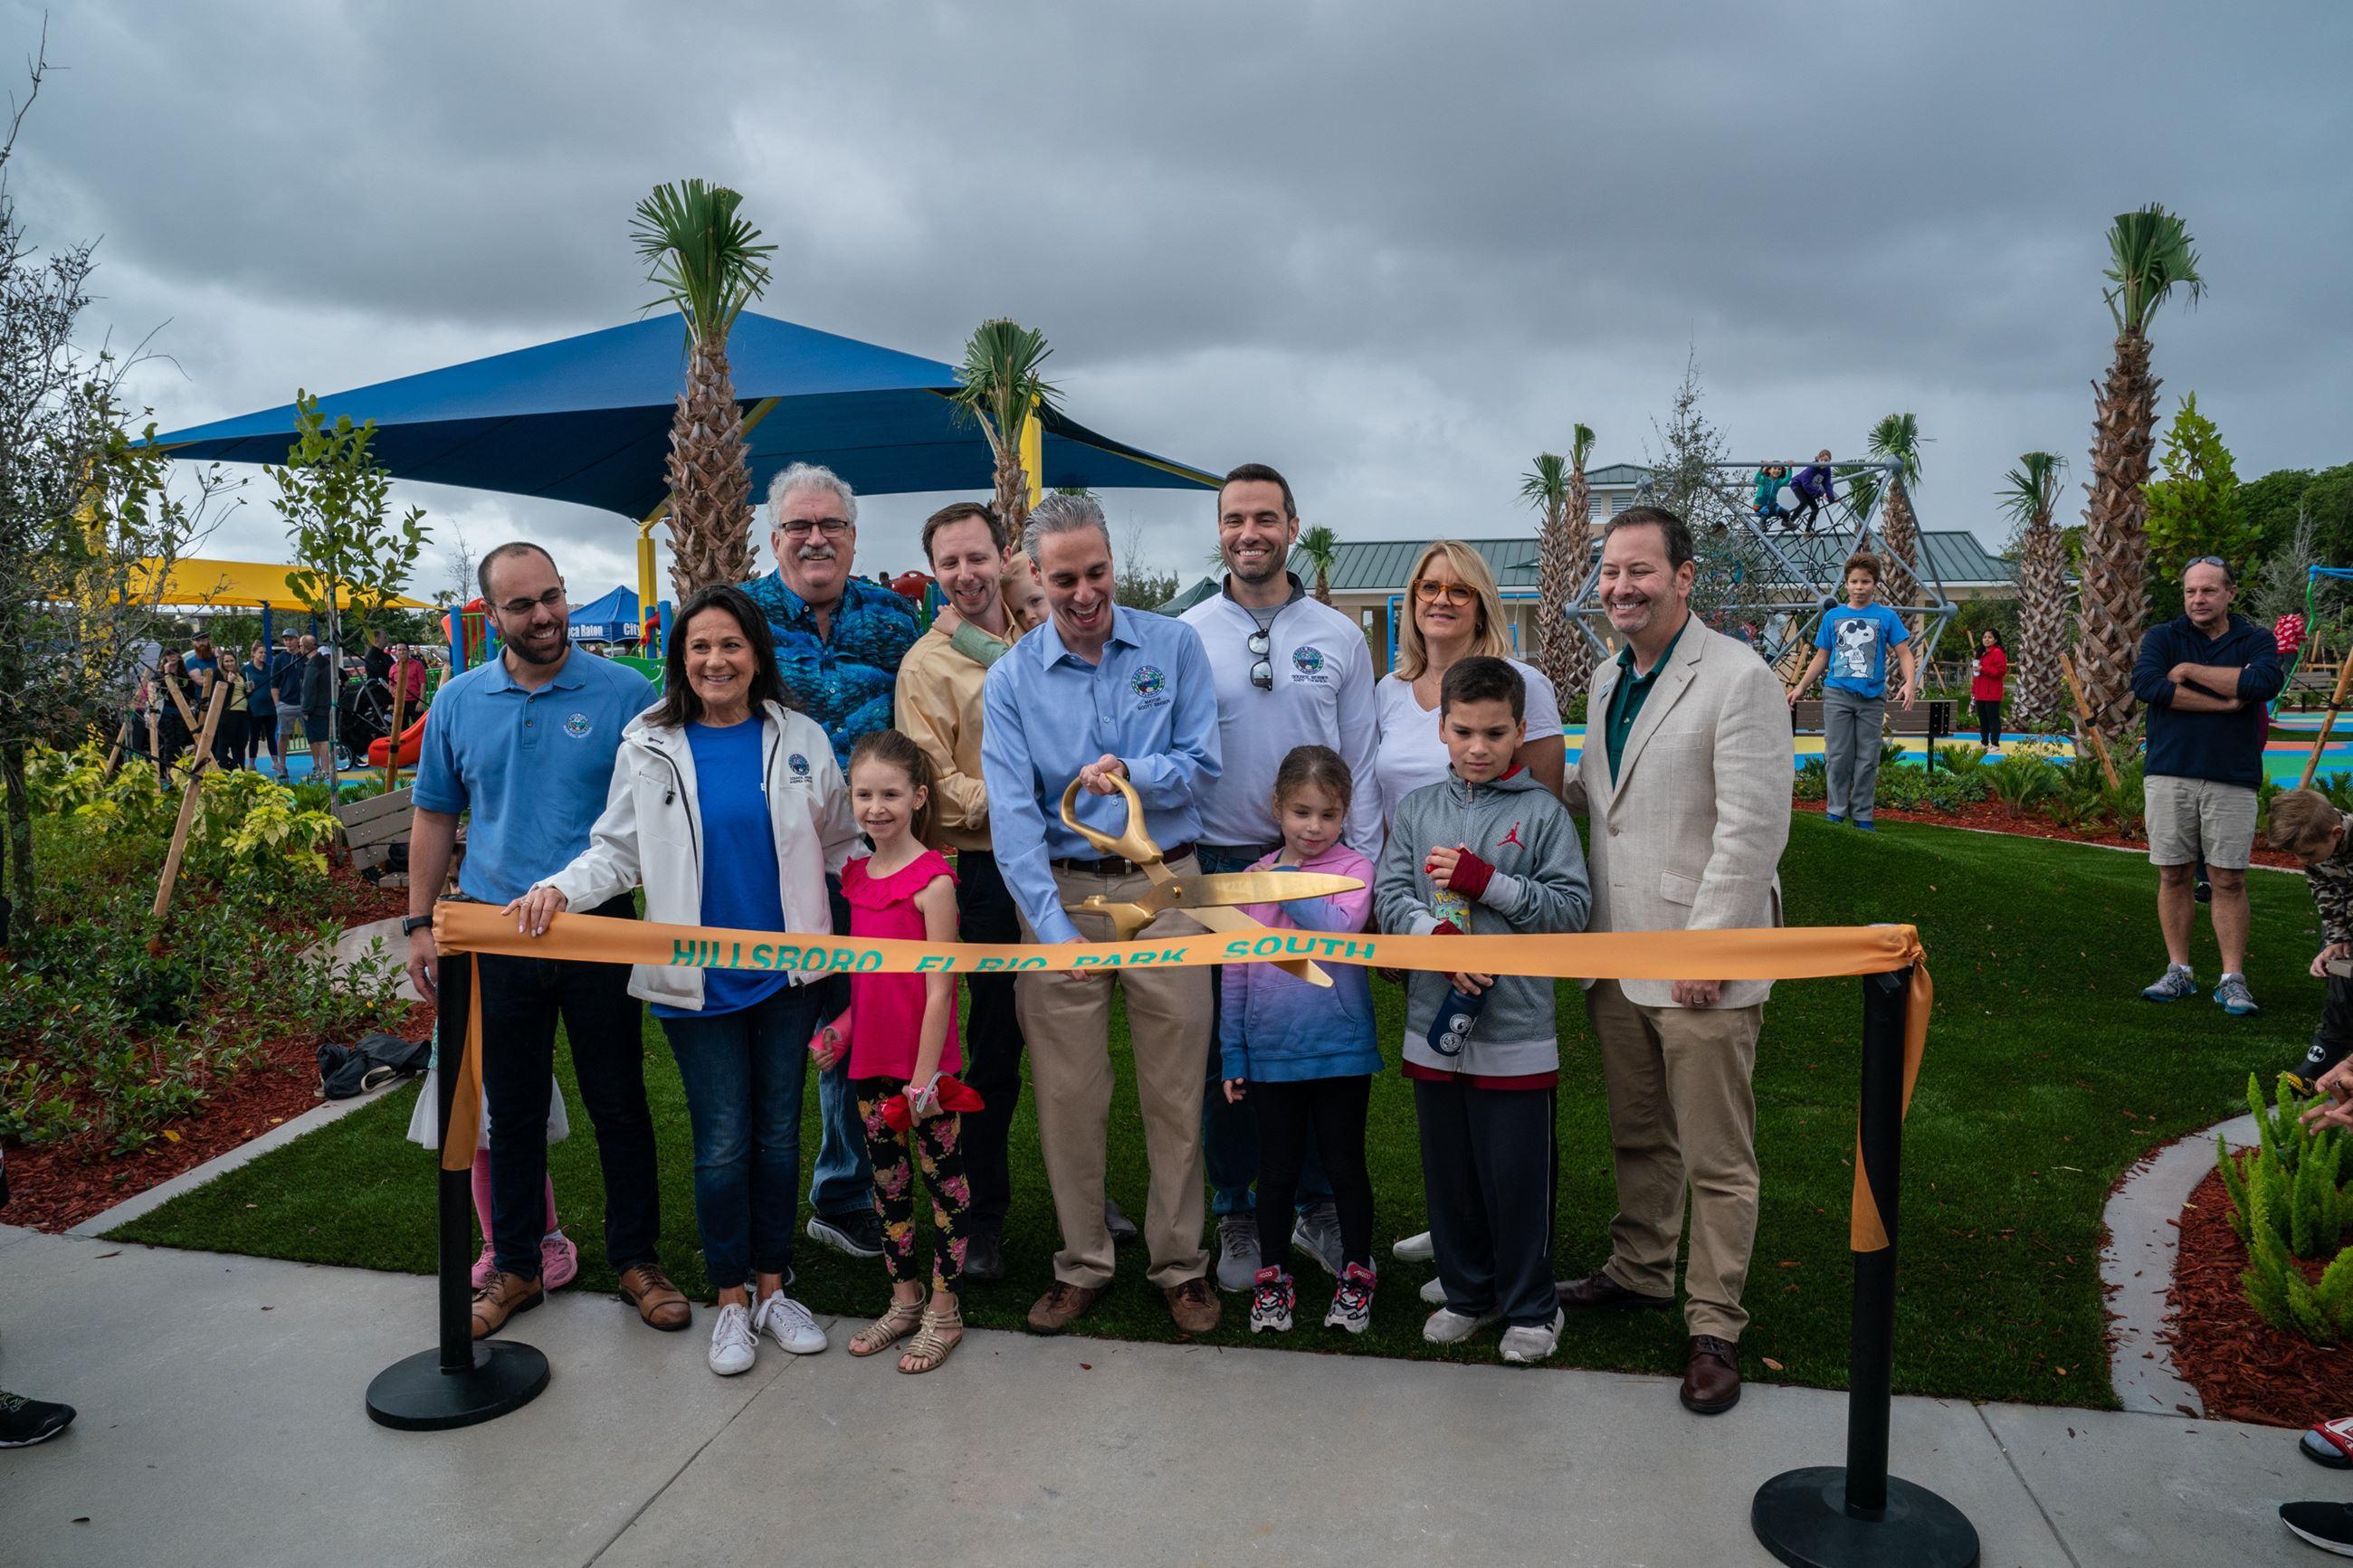 city council cutting the ribbon for the park opening